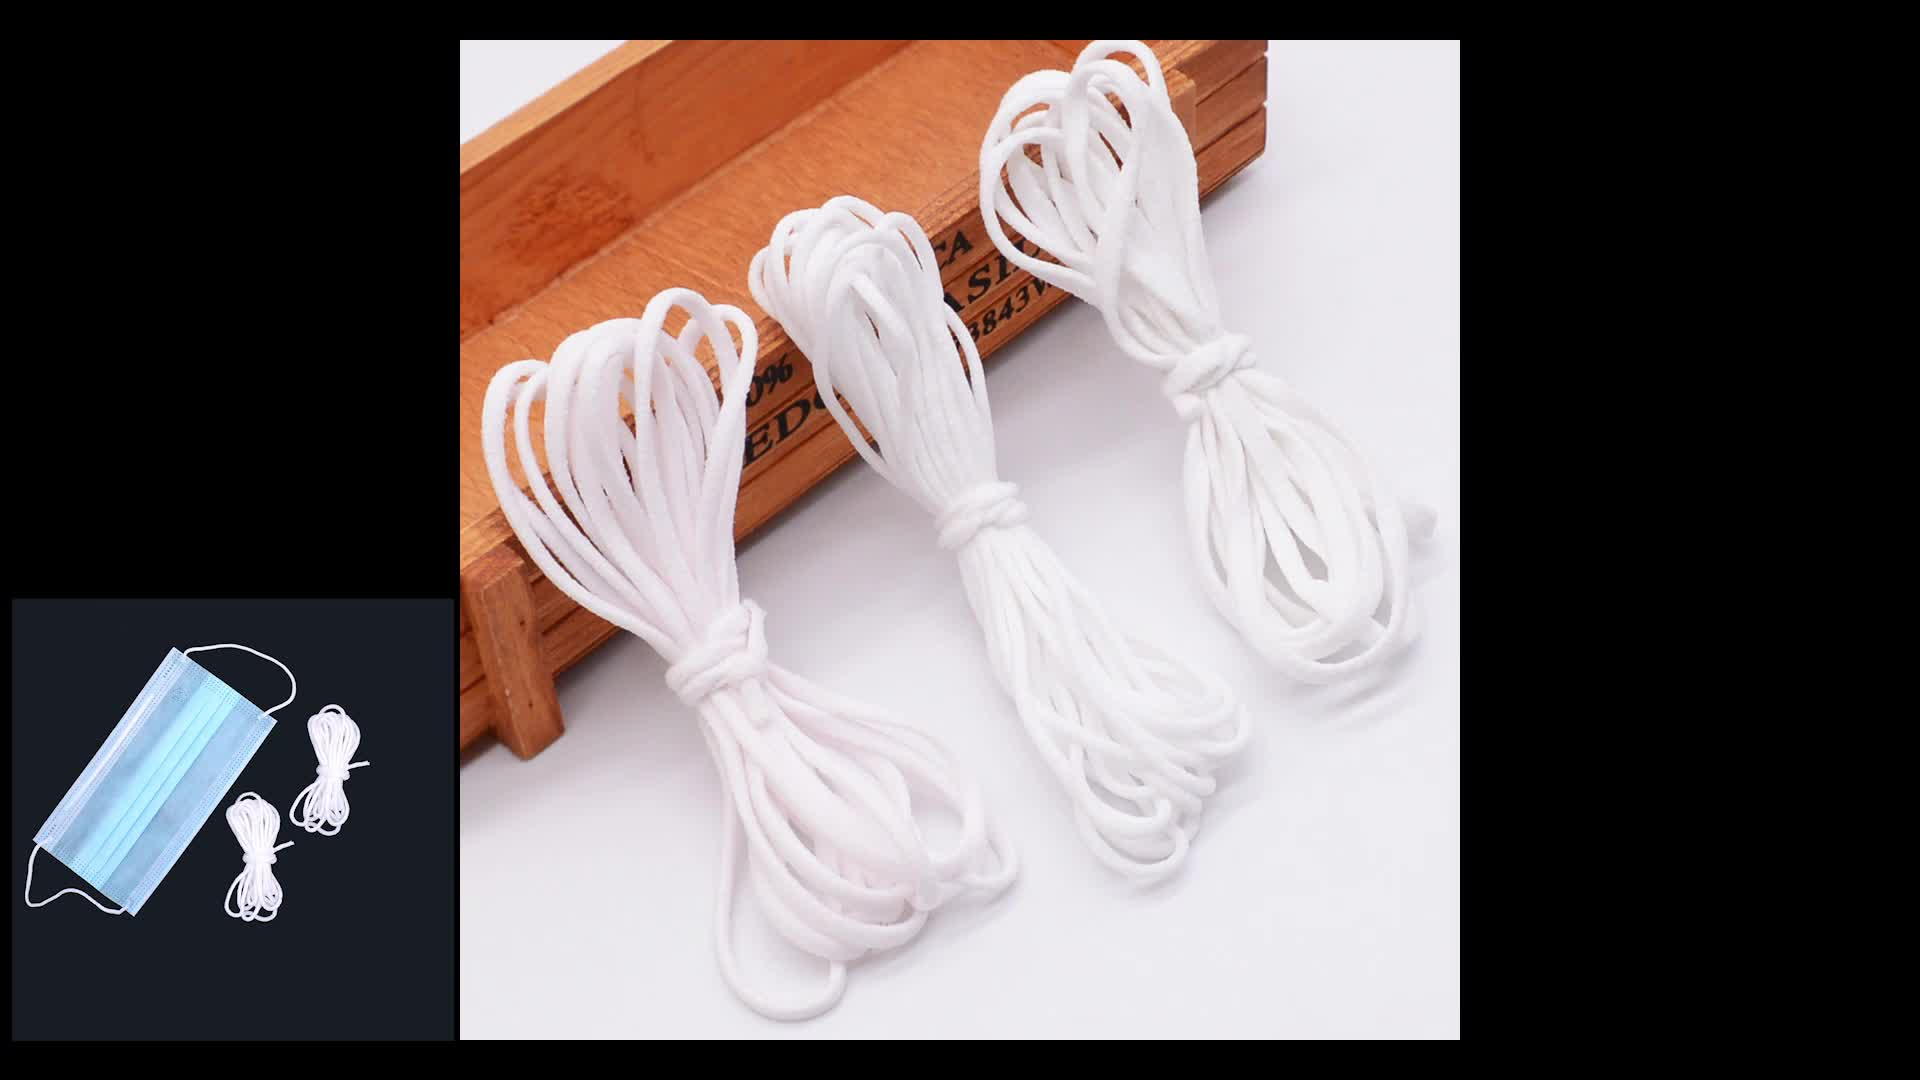 elastic cord for mask 5mm elastic cord for mask